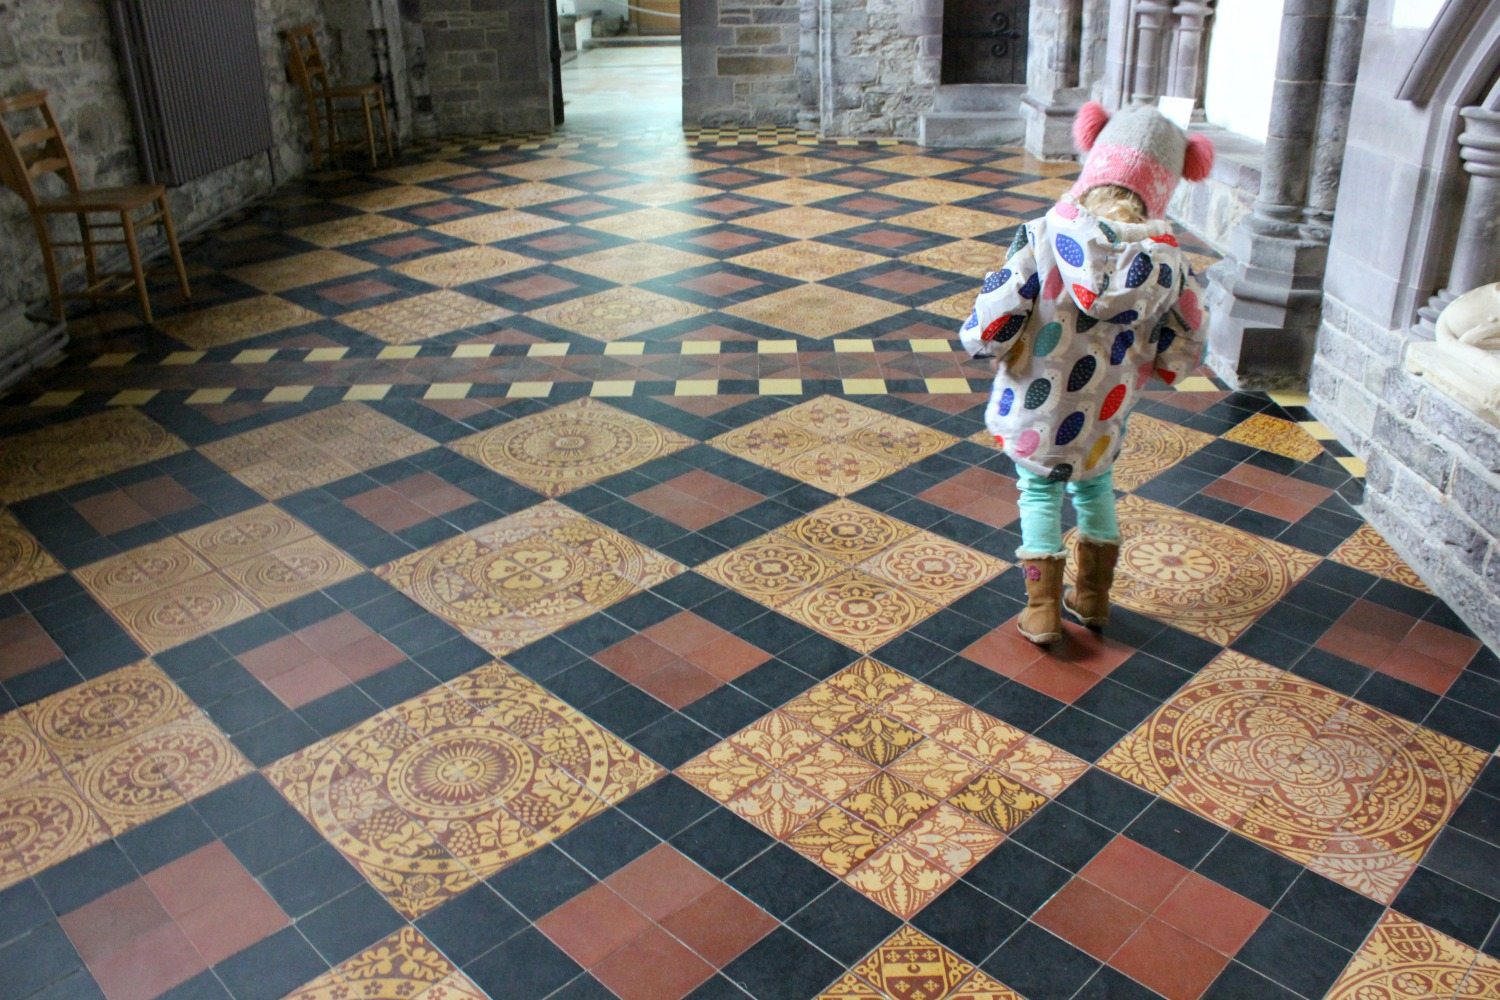 Girl on the ornate tiled floor of St David's Cathedral - on our journey to discover Welsh legends